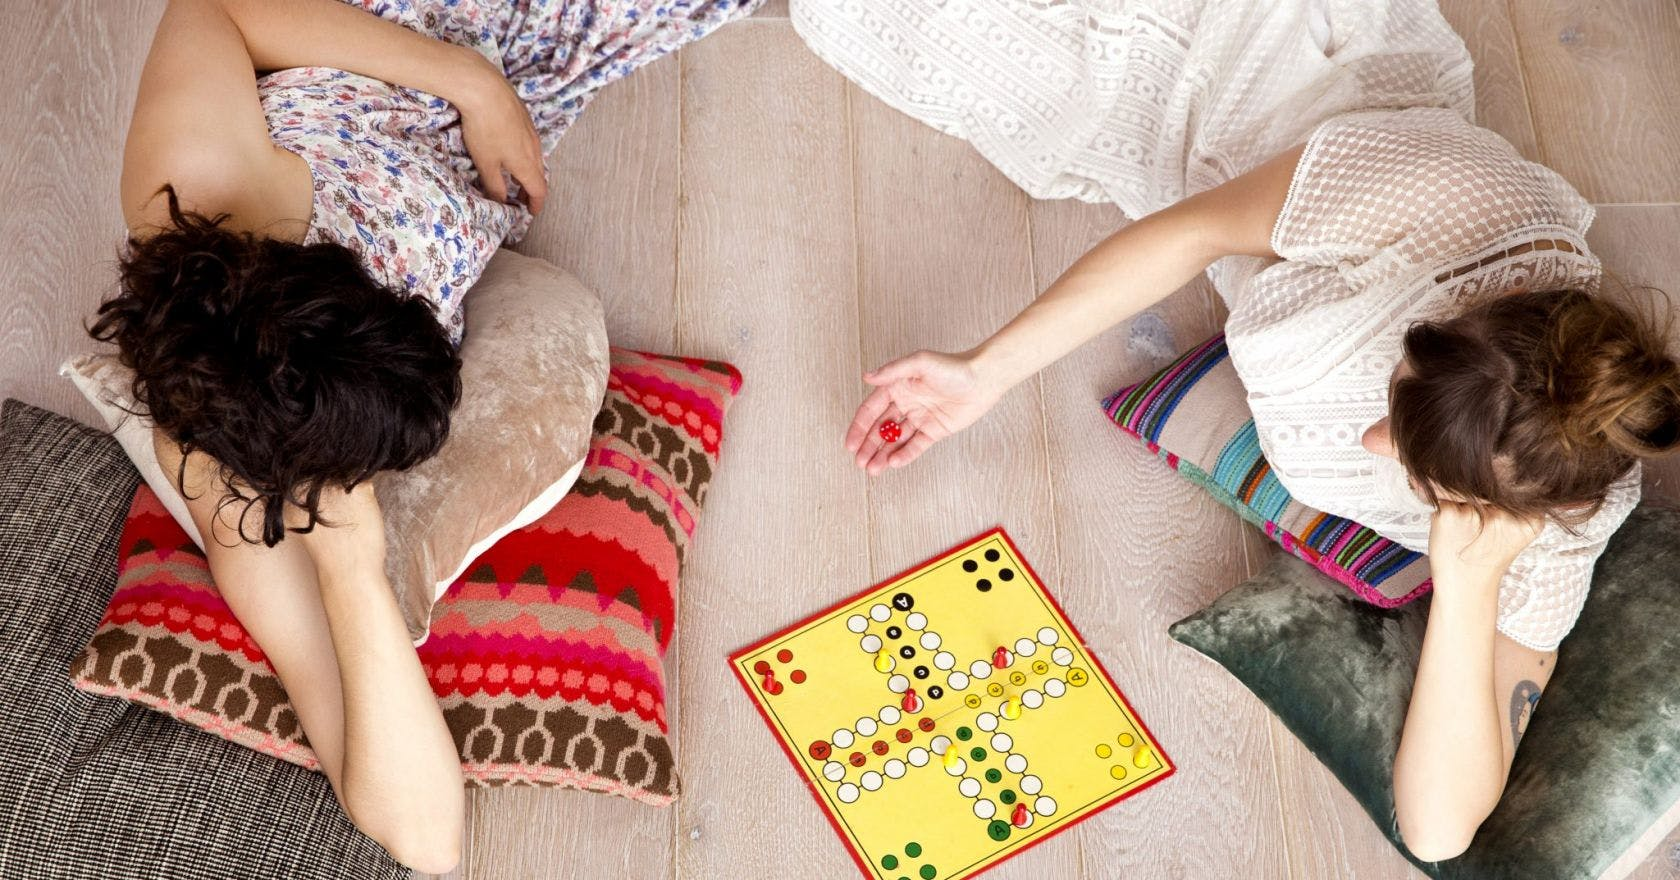 13 brilliant board games you can play with just 2 players